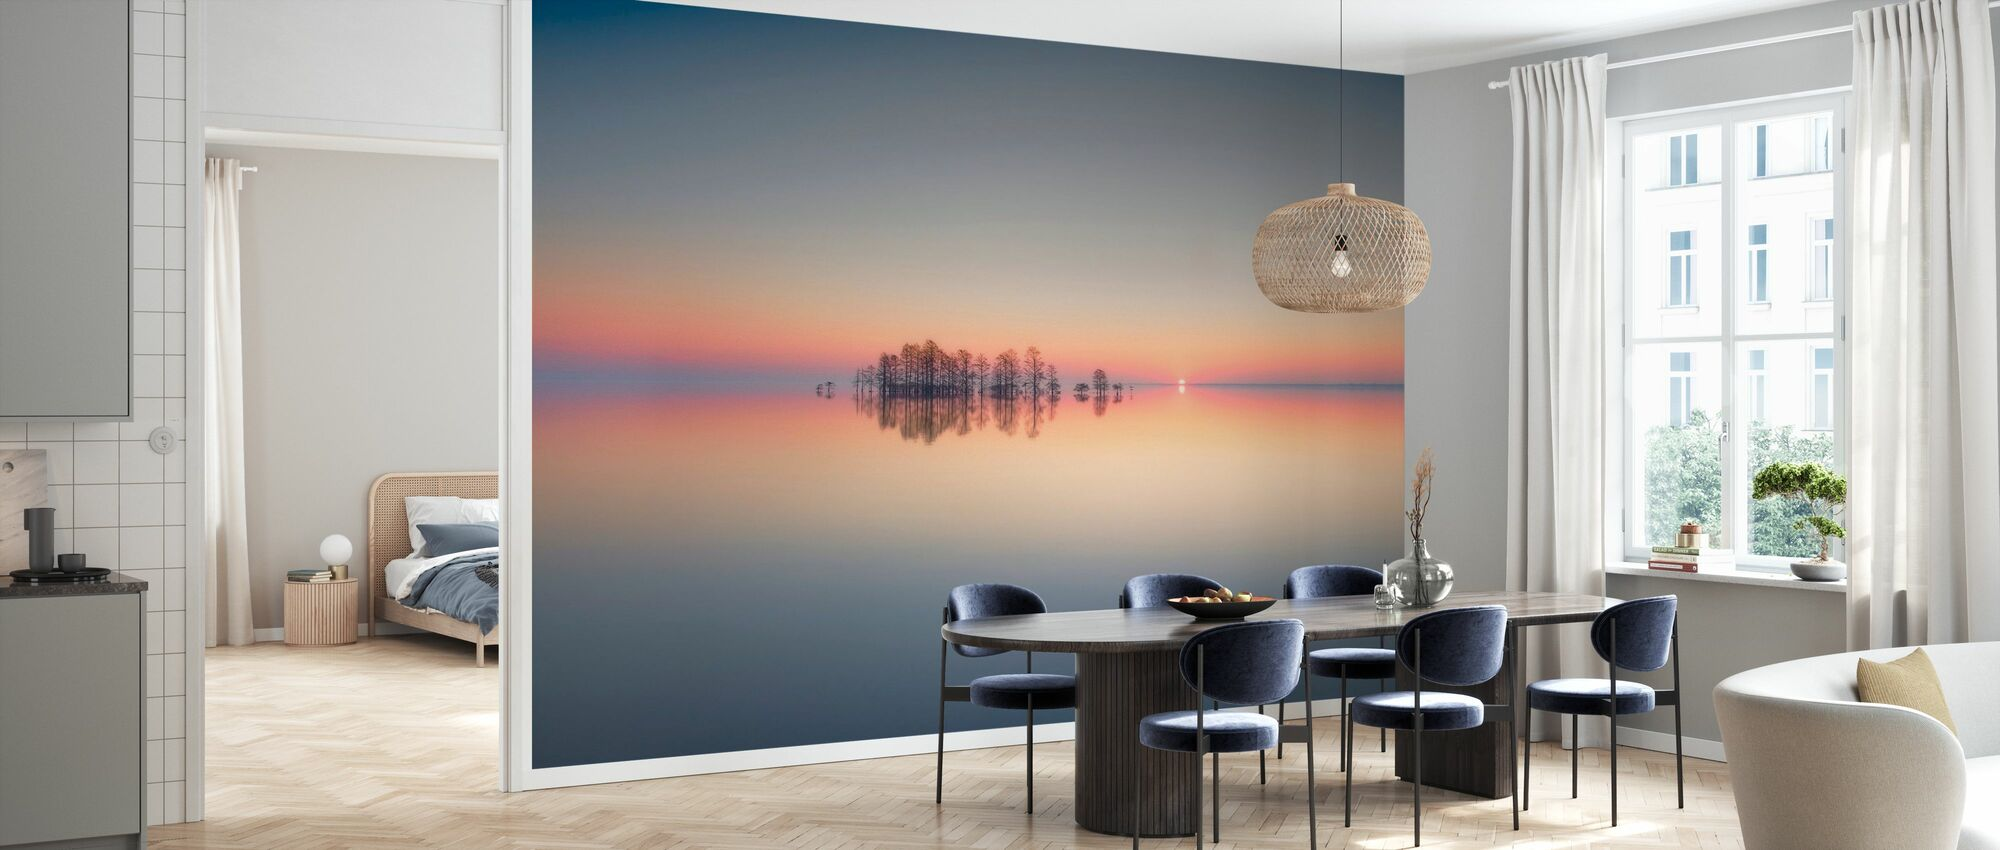 Dawn at Lake Mattamuskeet - Wallpaper - Kitchen